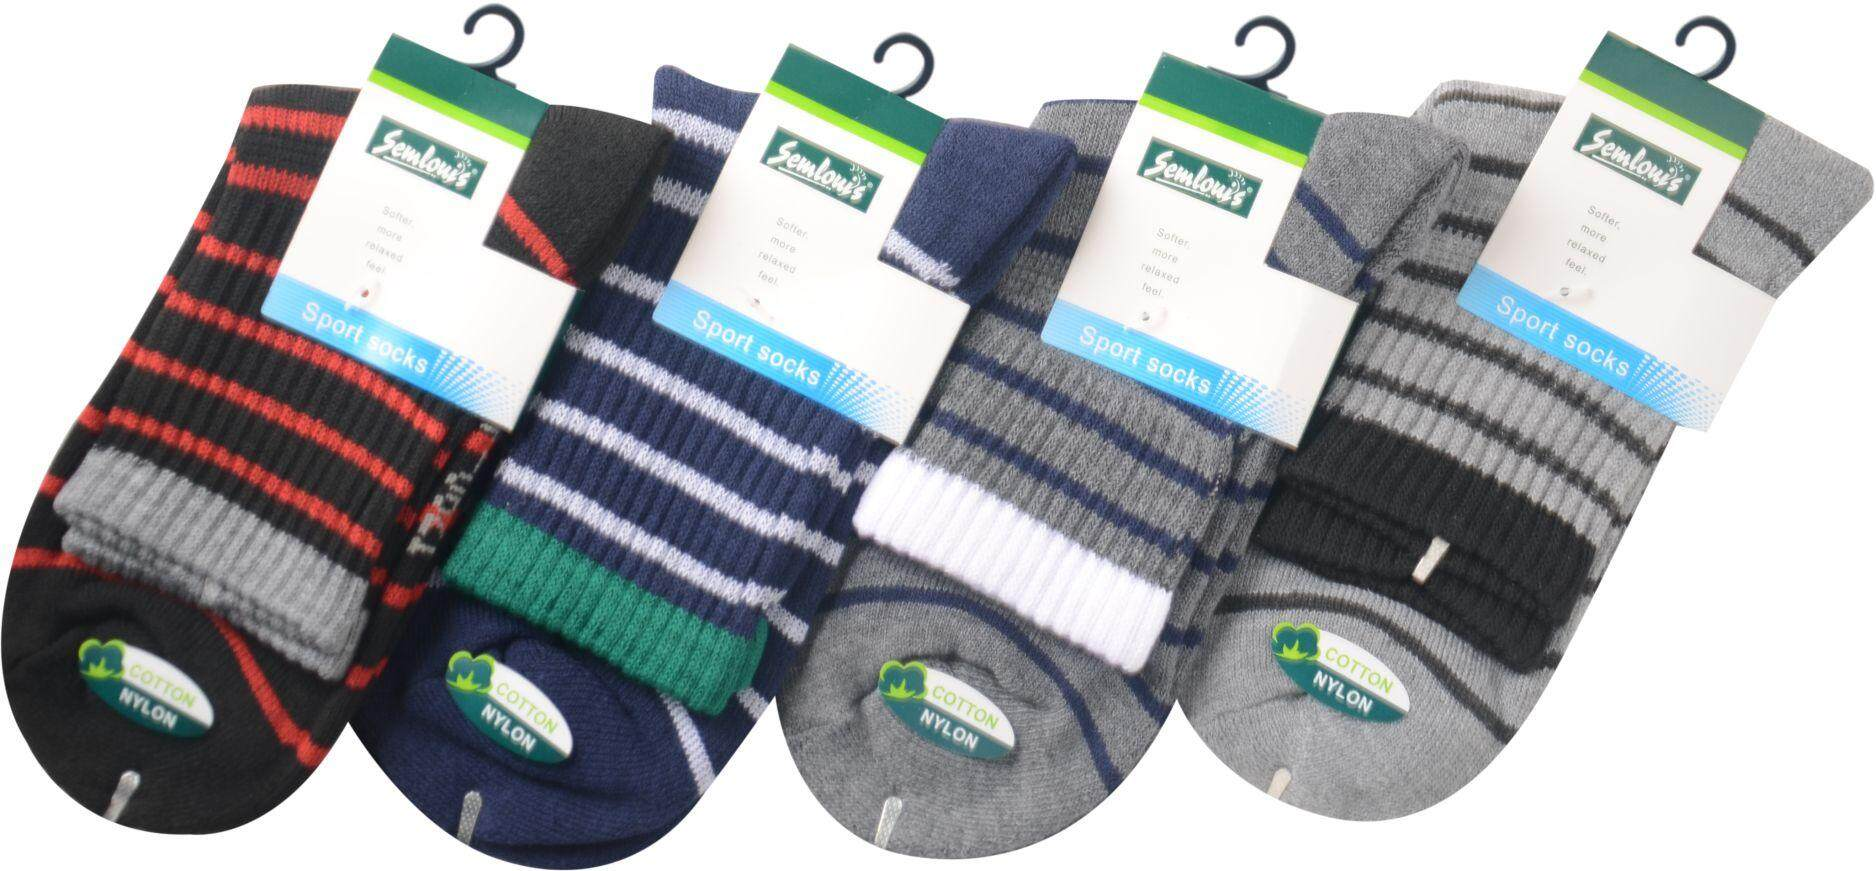 Semlouis Sport Ankle Cushion Base Socks - Coloured Lines / PAIR